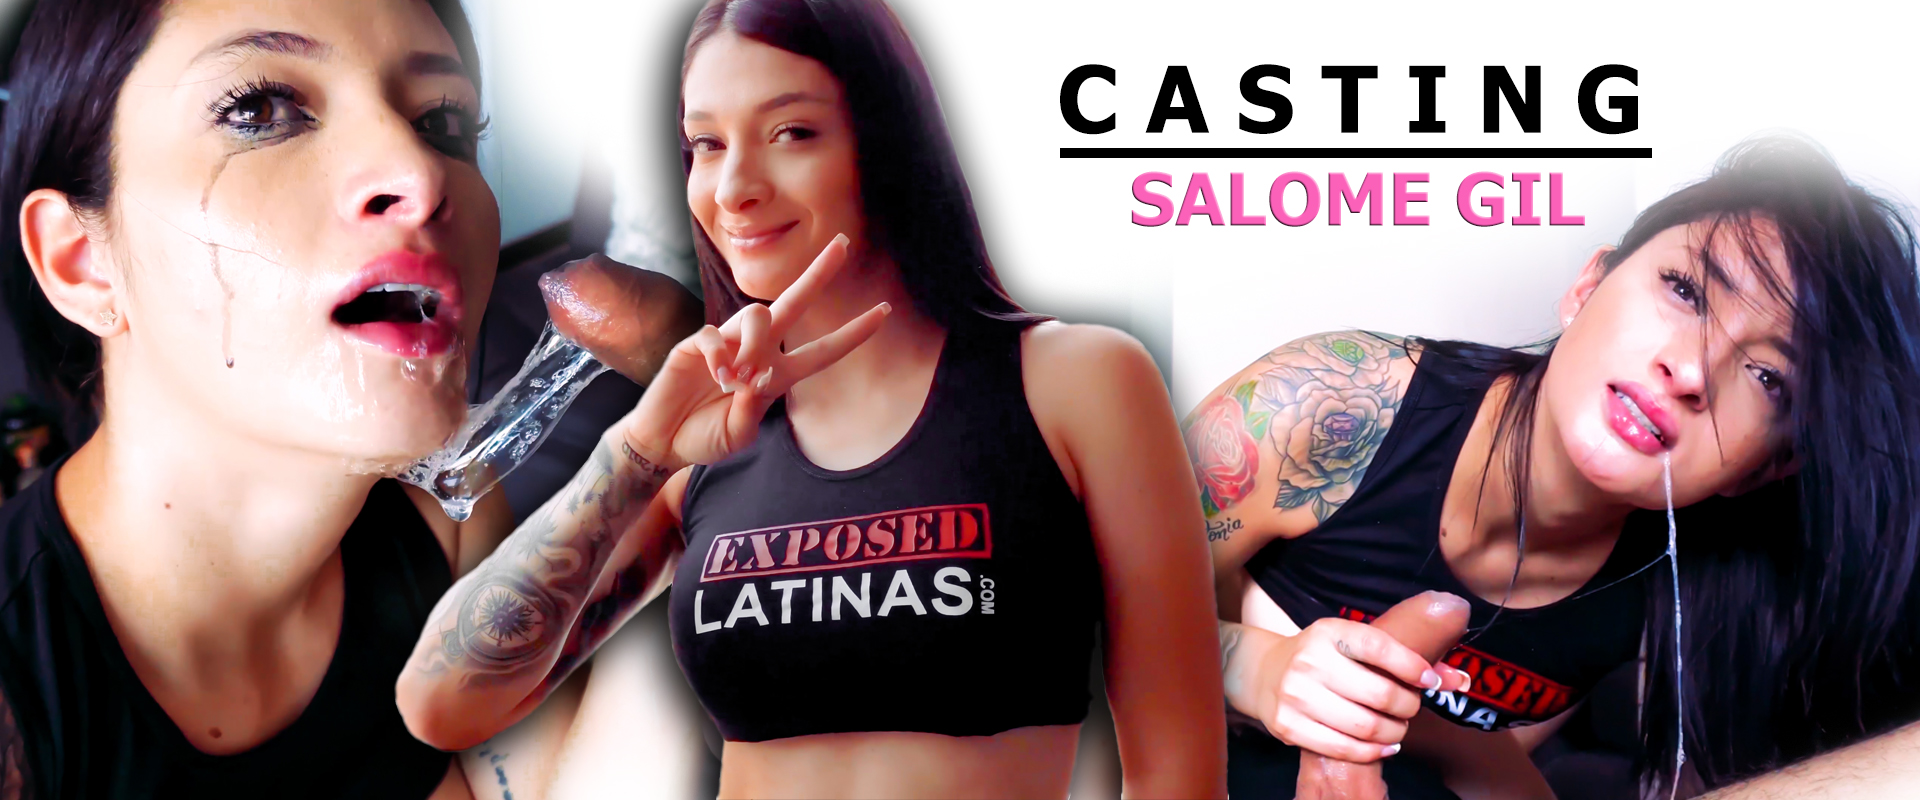 Salome Gil Blowjob Casting Exposed Latinas porno porn